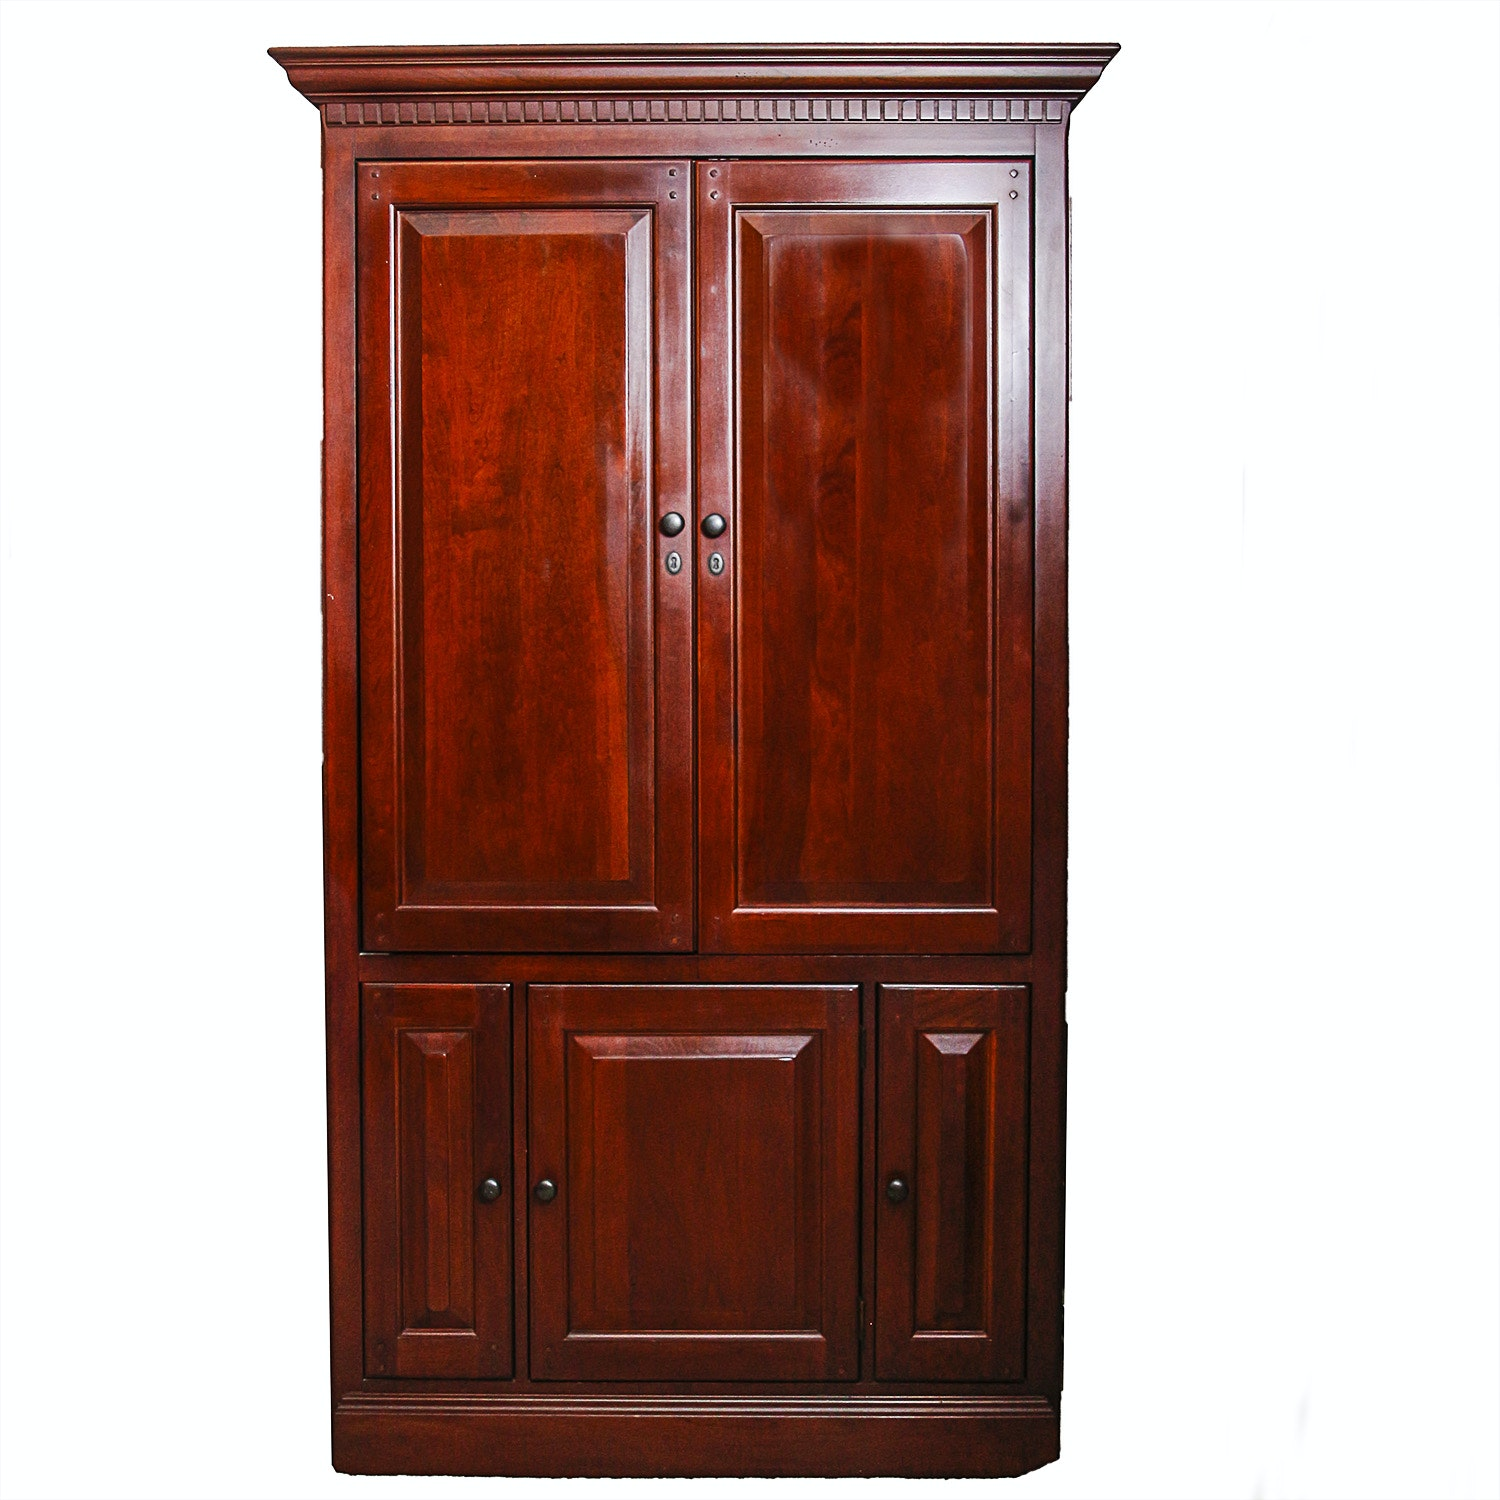 Entertainment Armoire Converted to Bar Cabinet